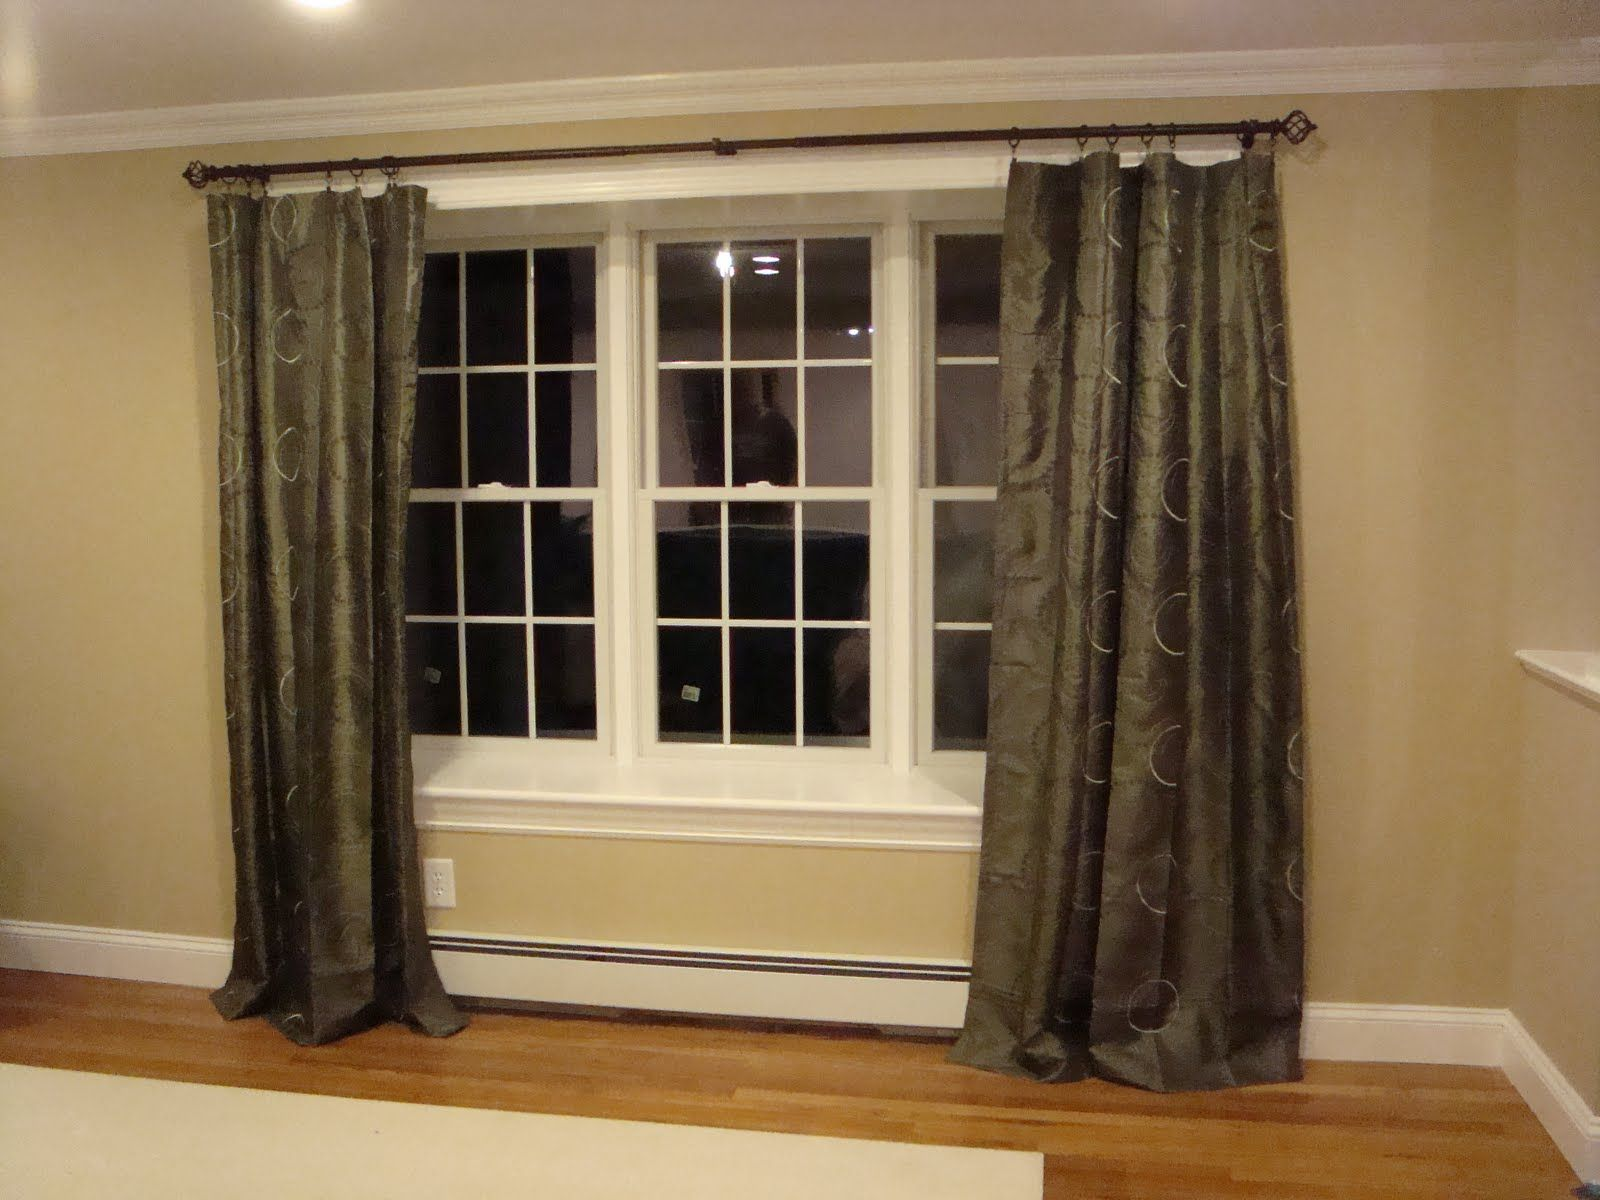 Creative window coverings  window panels and valances  google search  window treatments